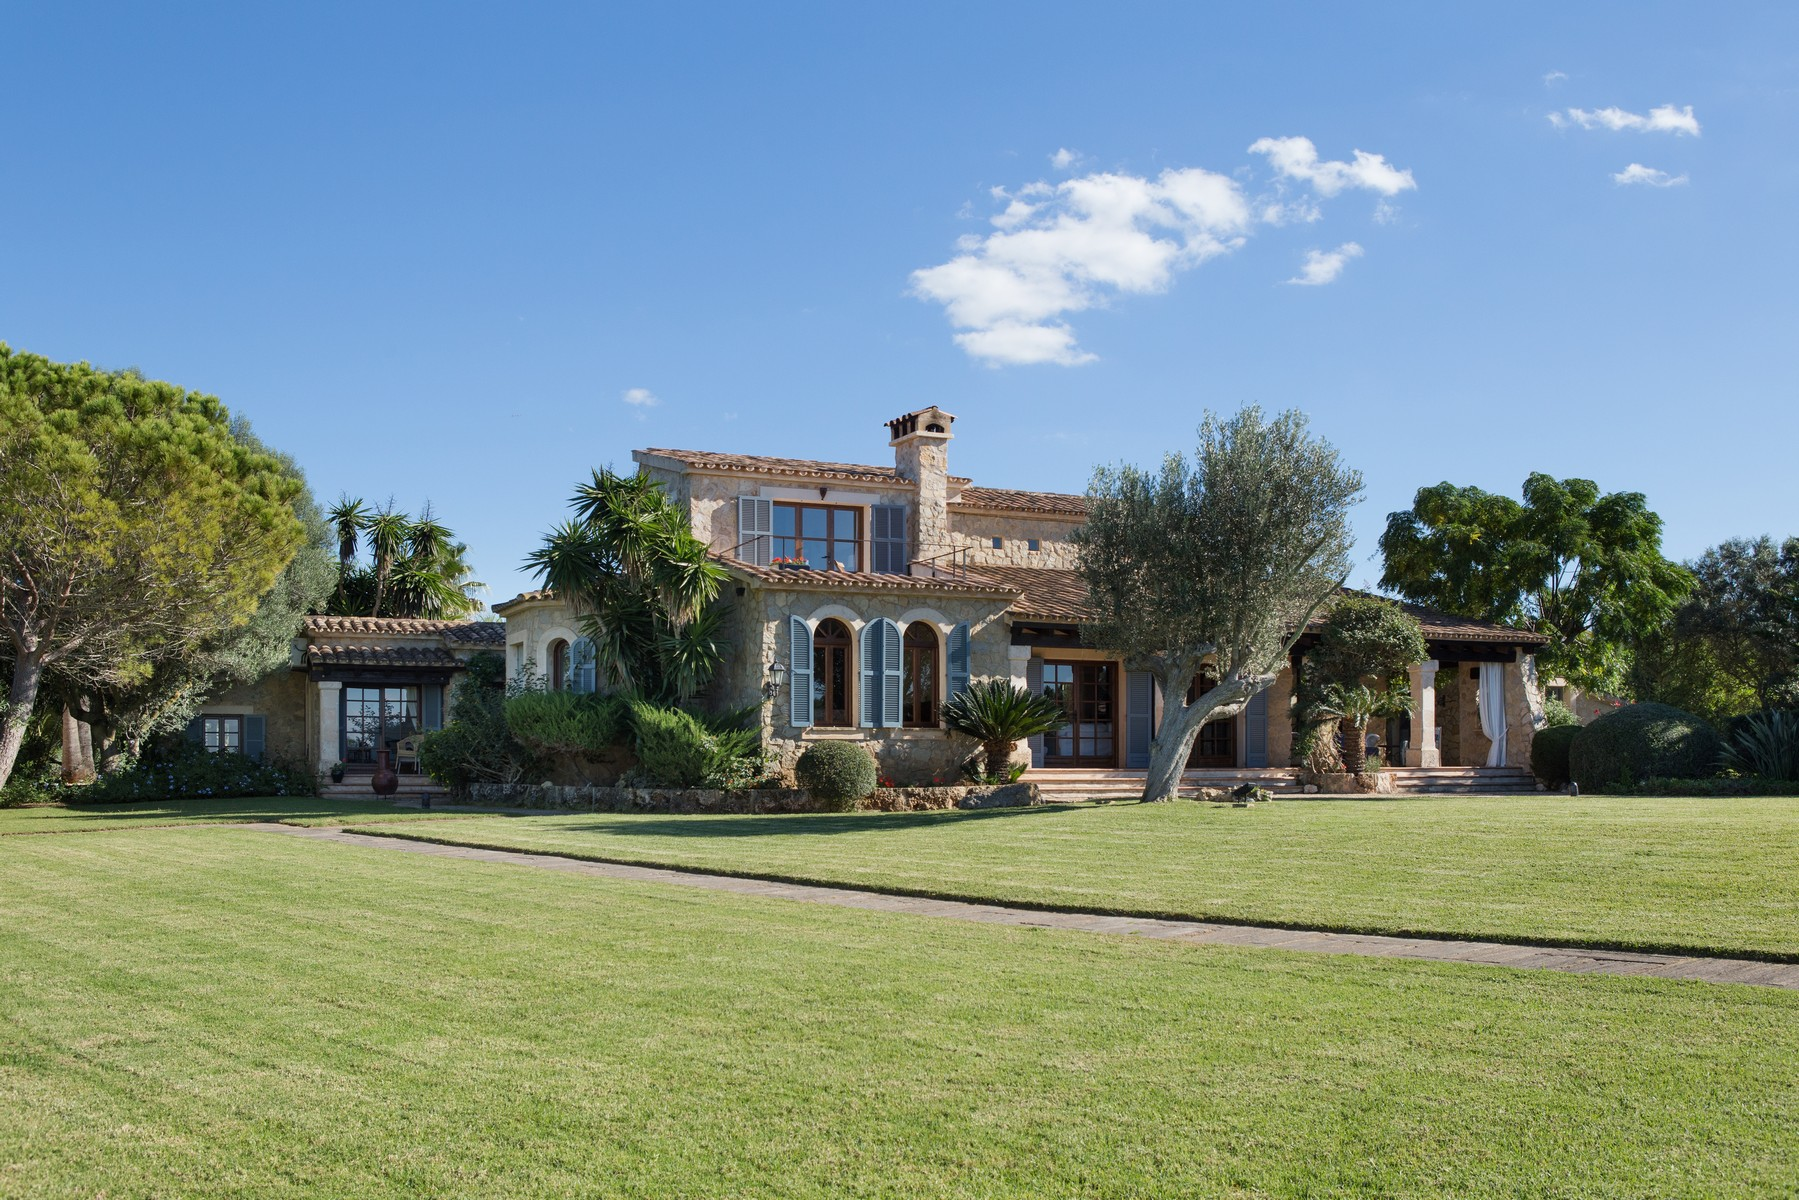 Single Family Home for Sale at Majorcan country estate with stunning views Manacor, Mallorca, 07529 Spain